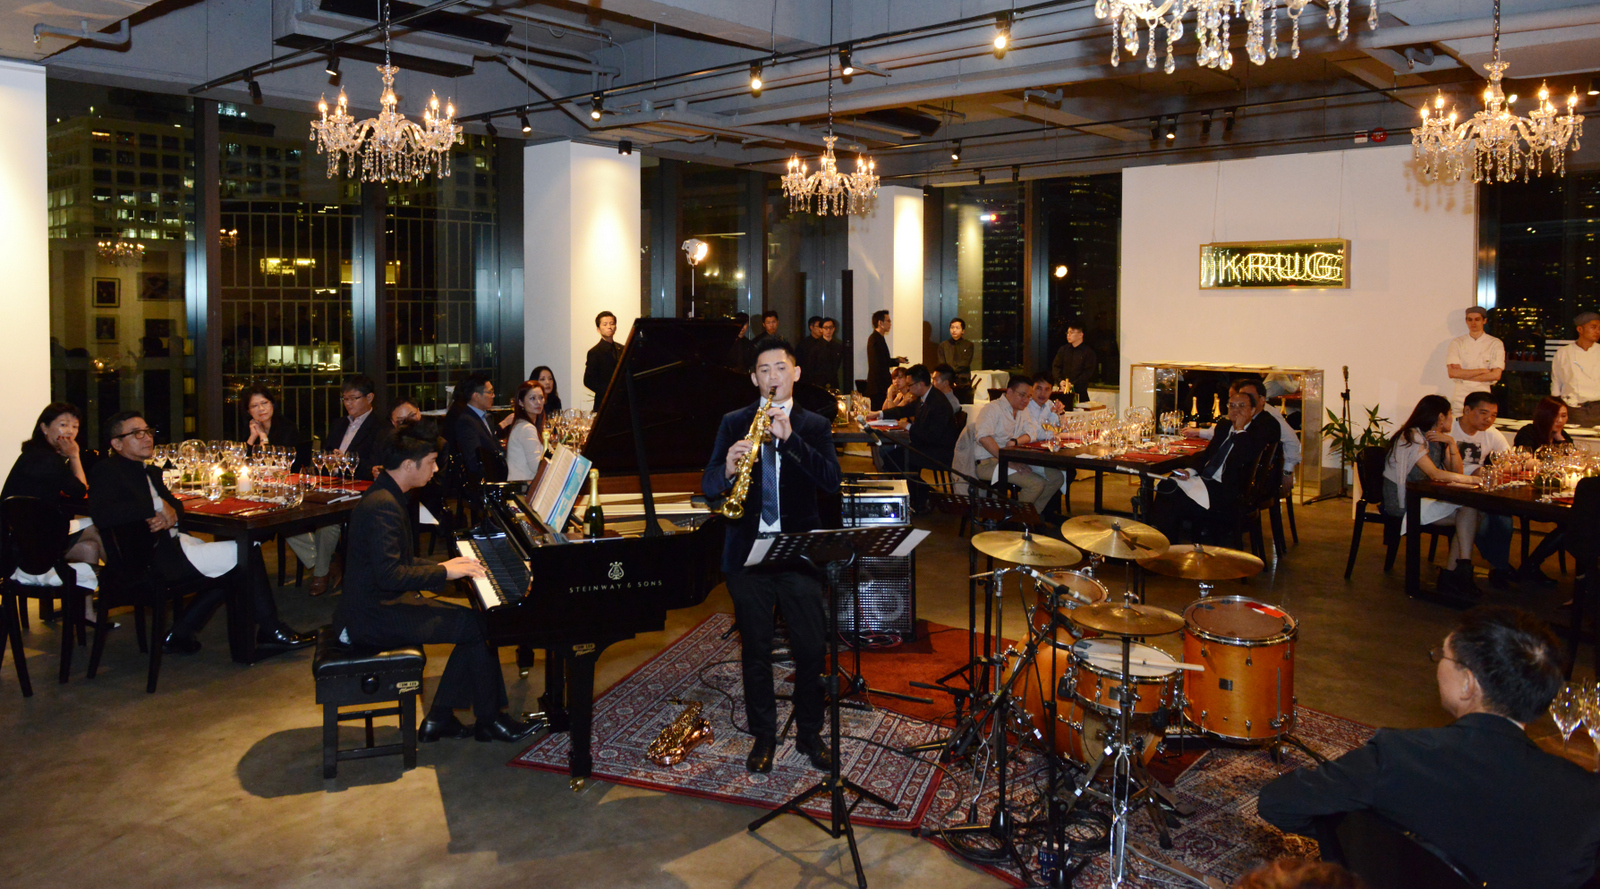 Live Performance in Krug Champagne Event